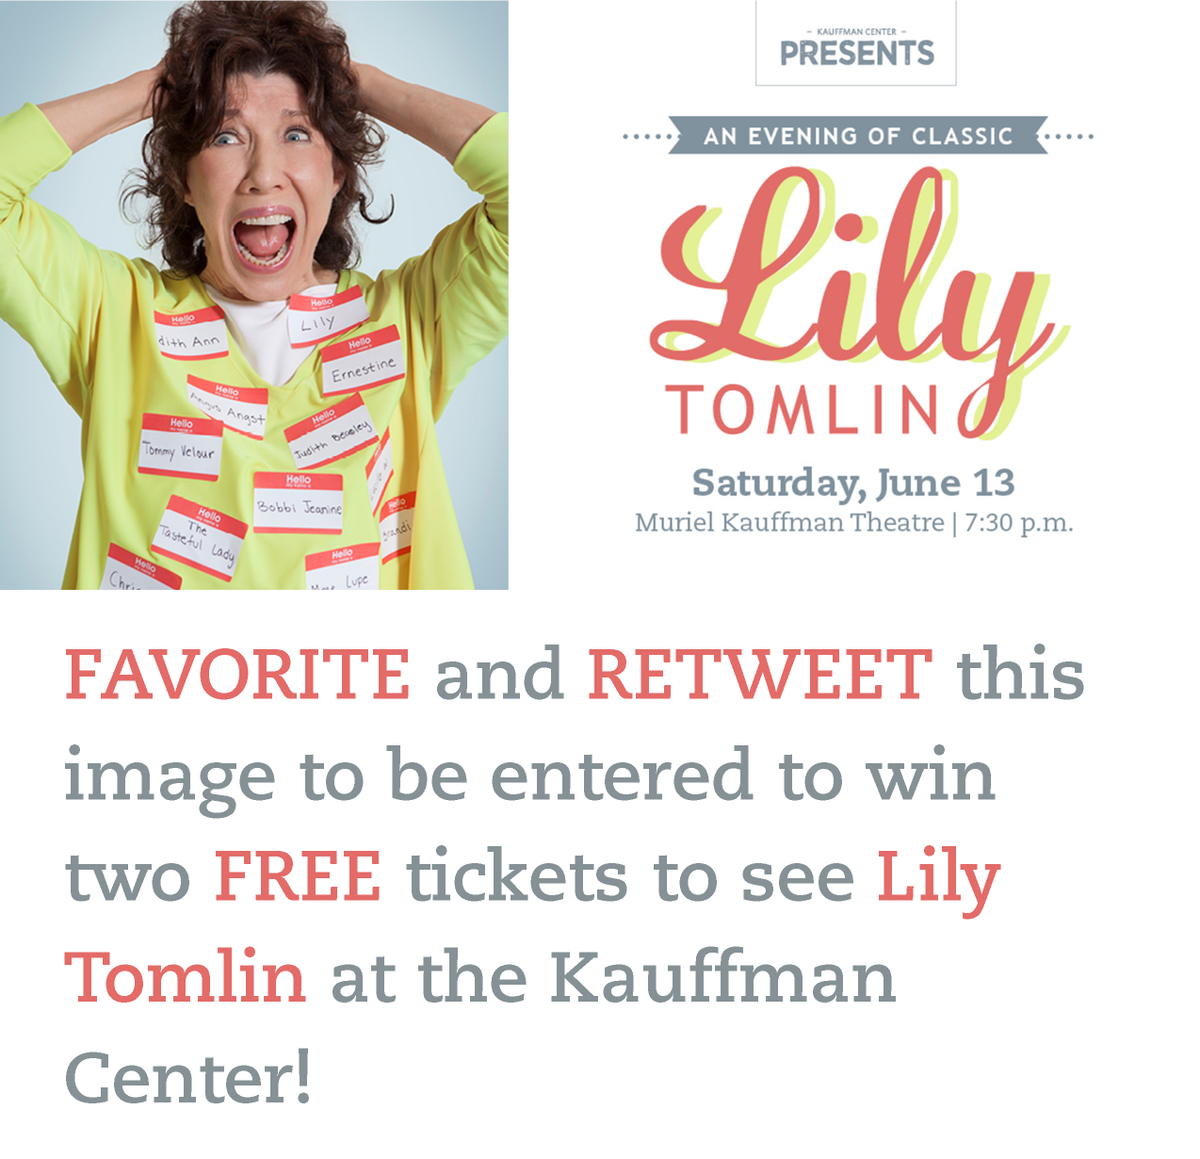 FAVORITE and RETWEET this image to be entered to win two FREE tickets to see @LilyTomlin at the Kauffman Center! http://t.co/FaJ3aFbqrf